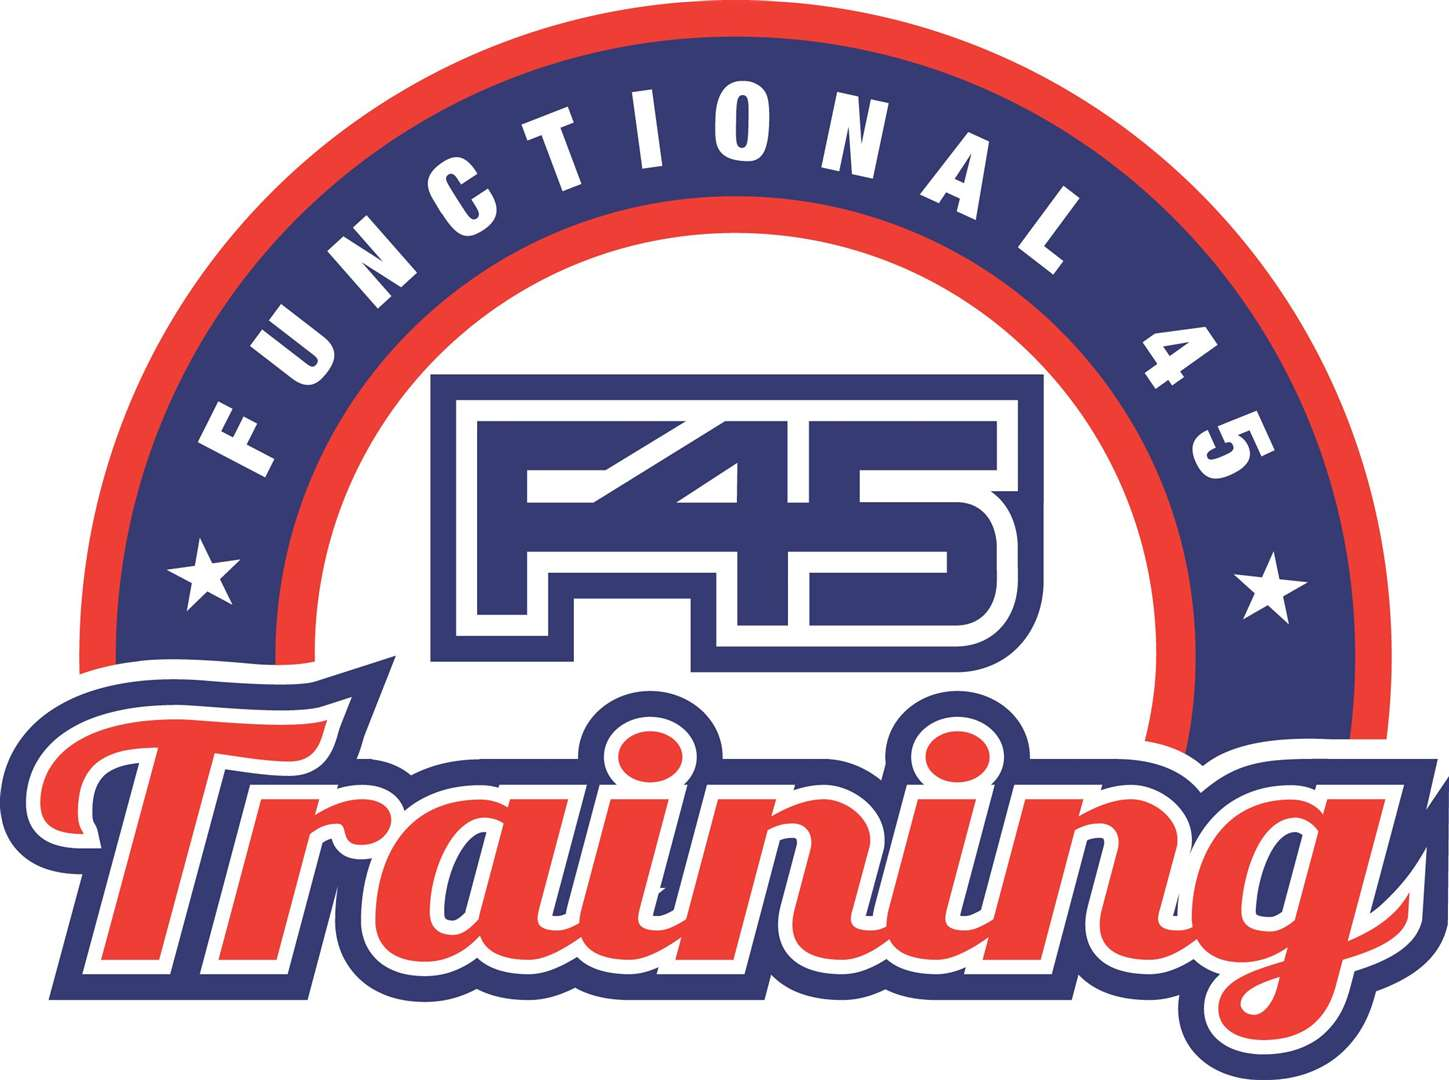 F45 Training Cambridge Station